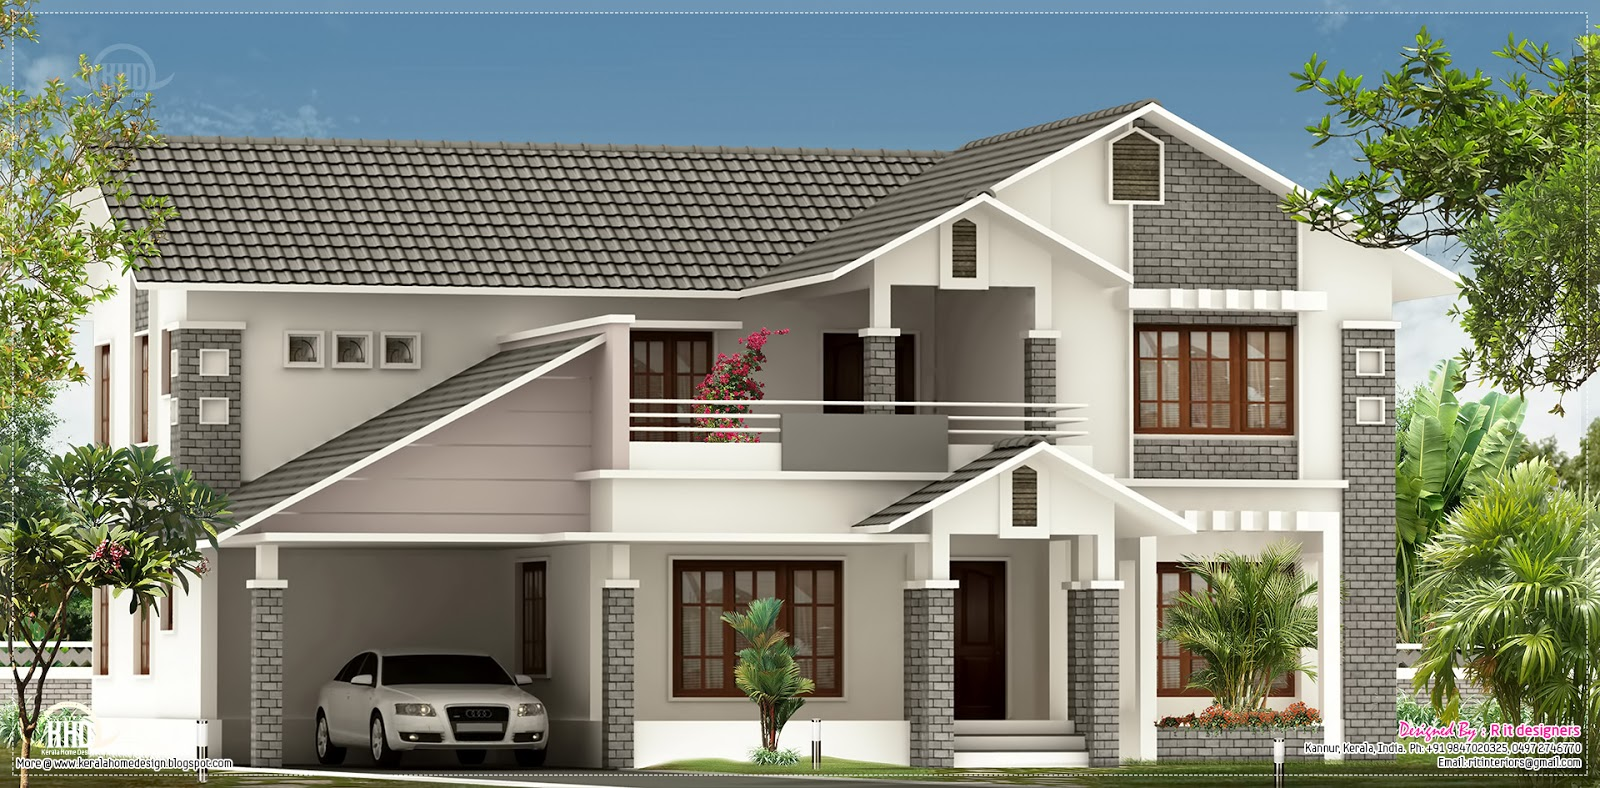 Home ideas house design plans with photos for Villa plans in kerala